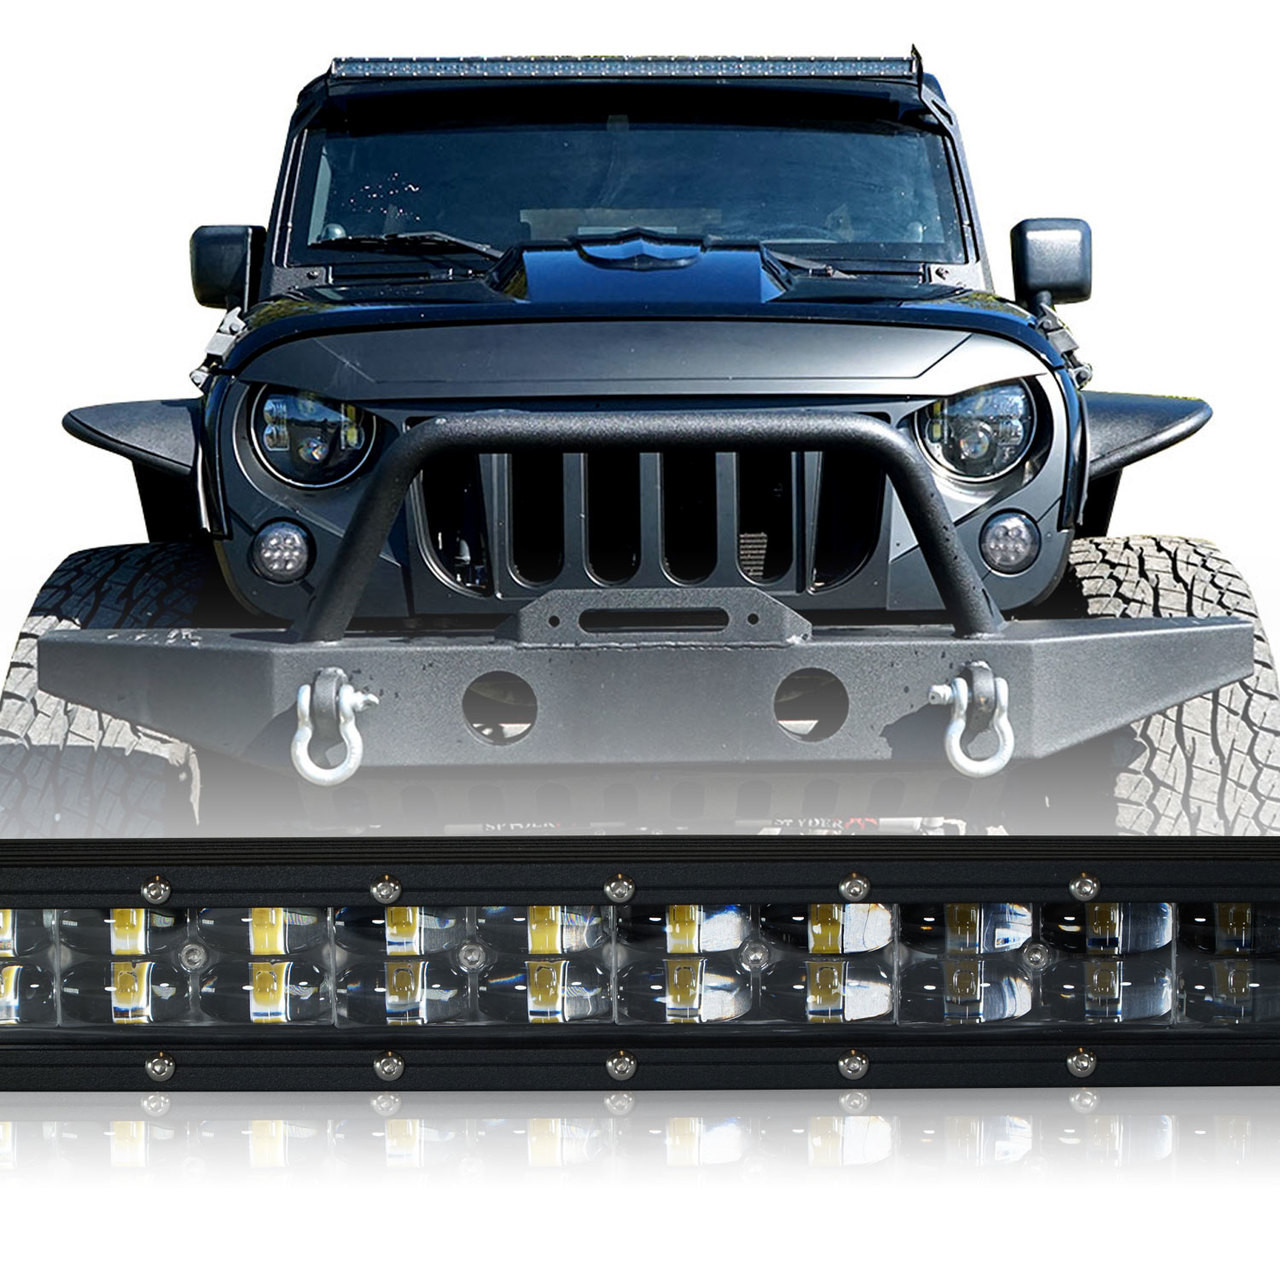 hight resolution of jeep wrangler wiring harness gallery of cars and accessories jeep wrangler wiring harness gallery of cars and accessories